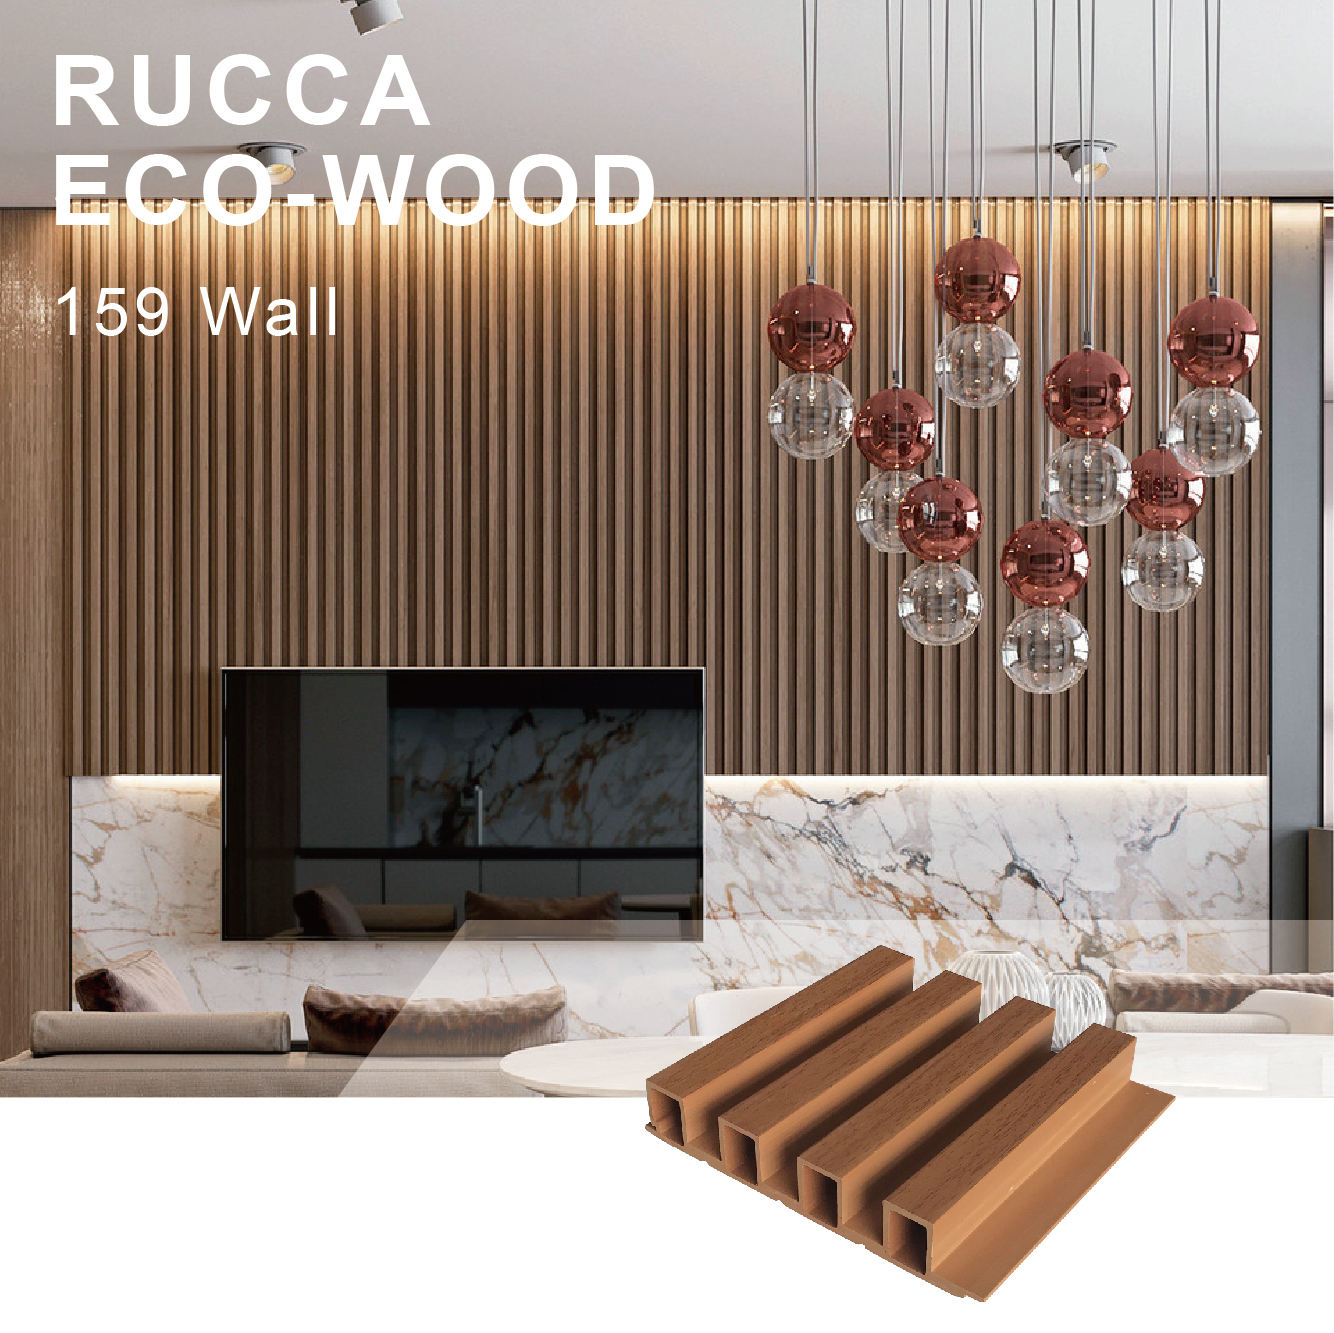 WPC art decor wooden wall panel lightweight exterior interior fireproof decorative 159*28mm wall siding panel